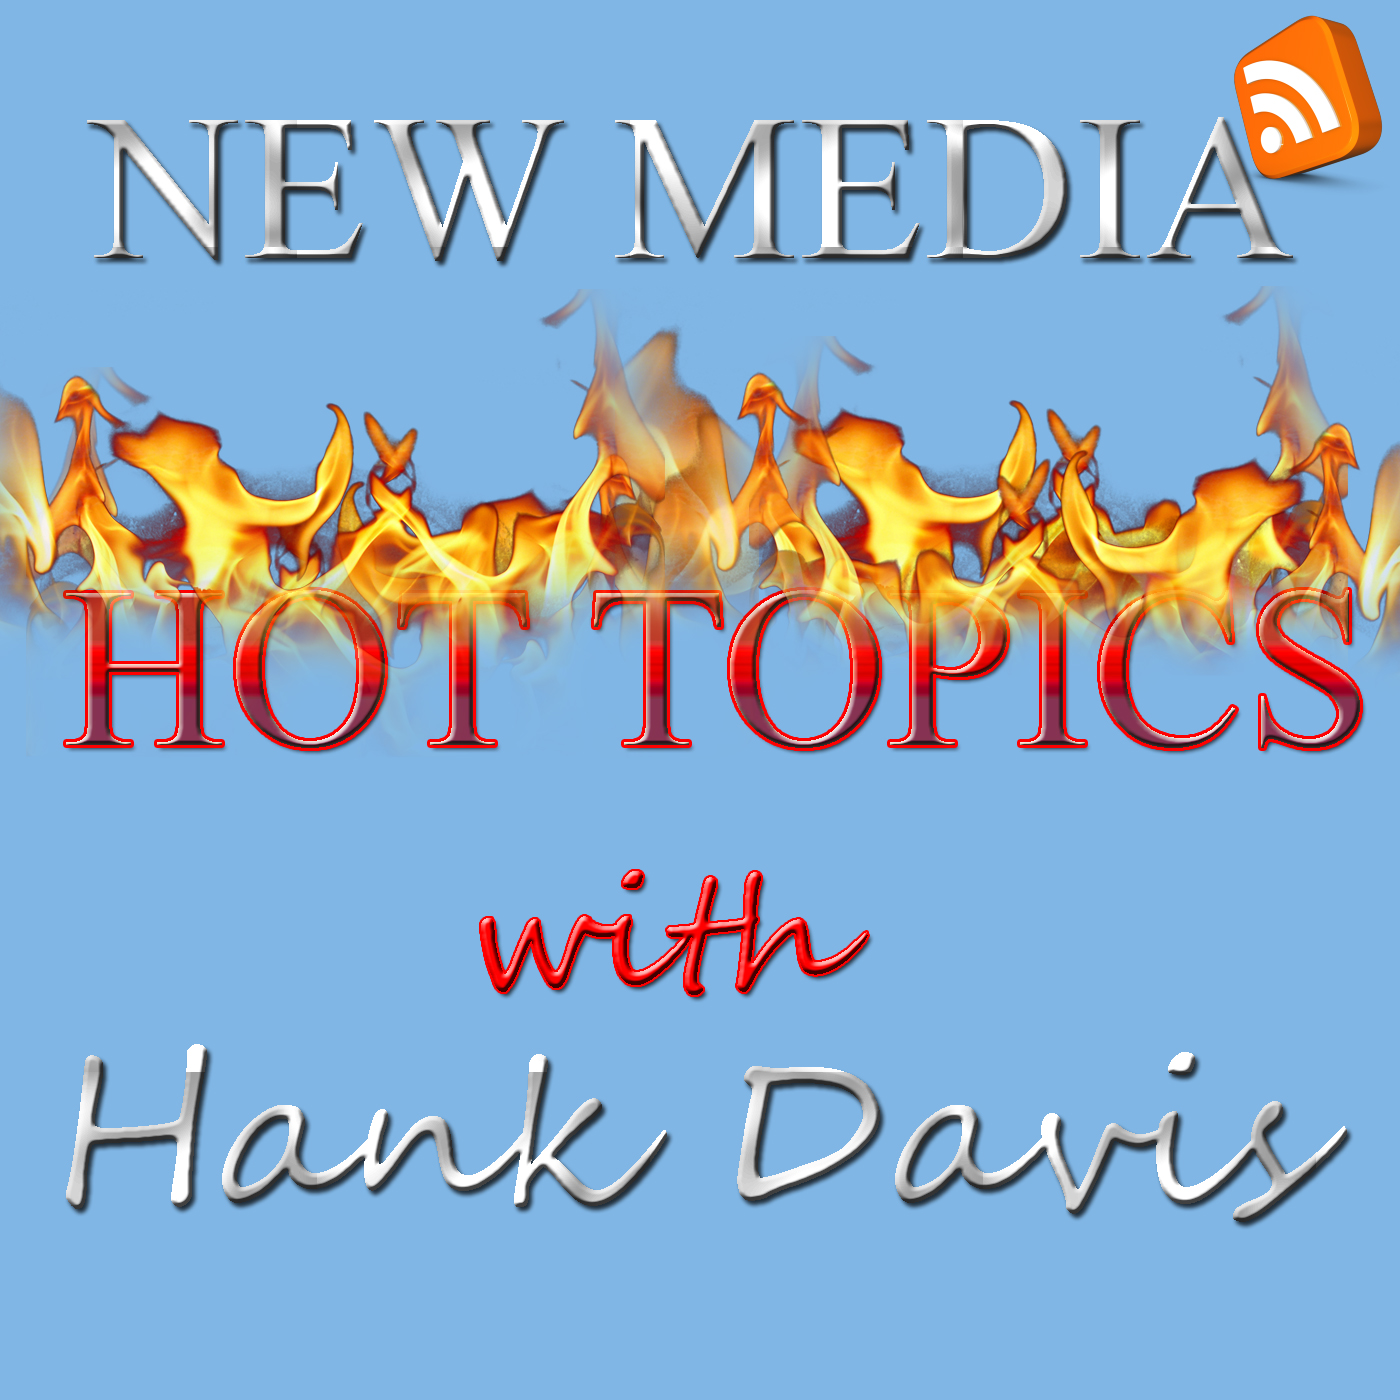 New Media Hot Topics | Podcasting / Blogging / Social Media Discussion / Debate